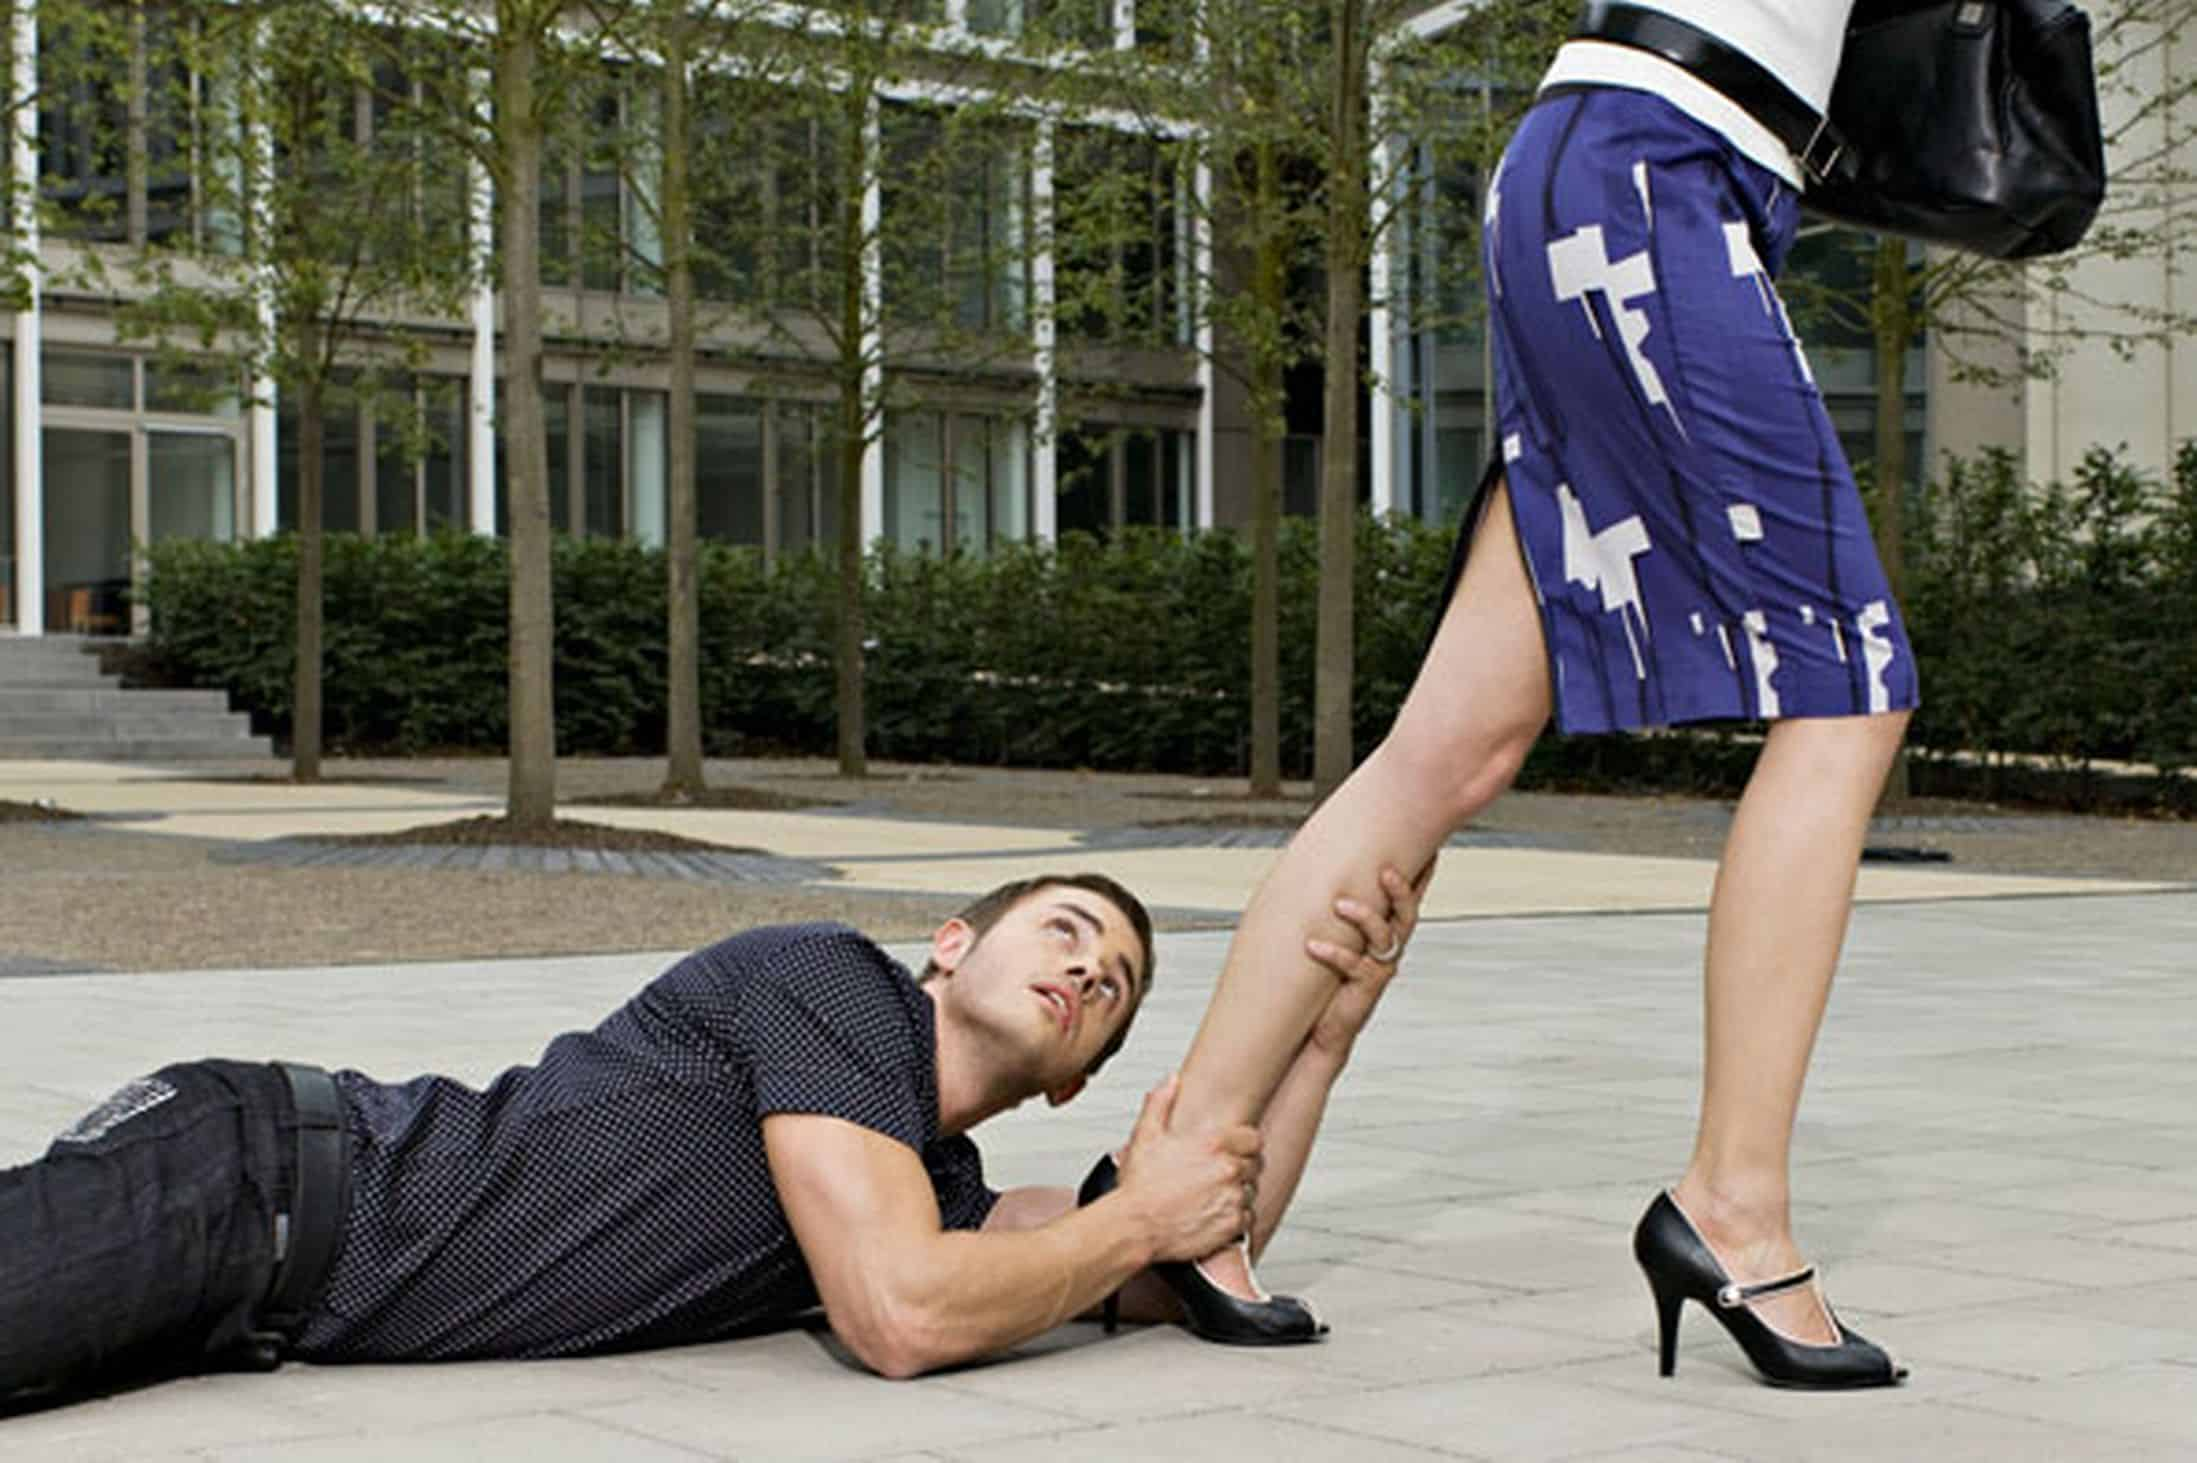 man begging a woman for attention pic getty images 792540948